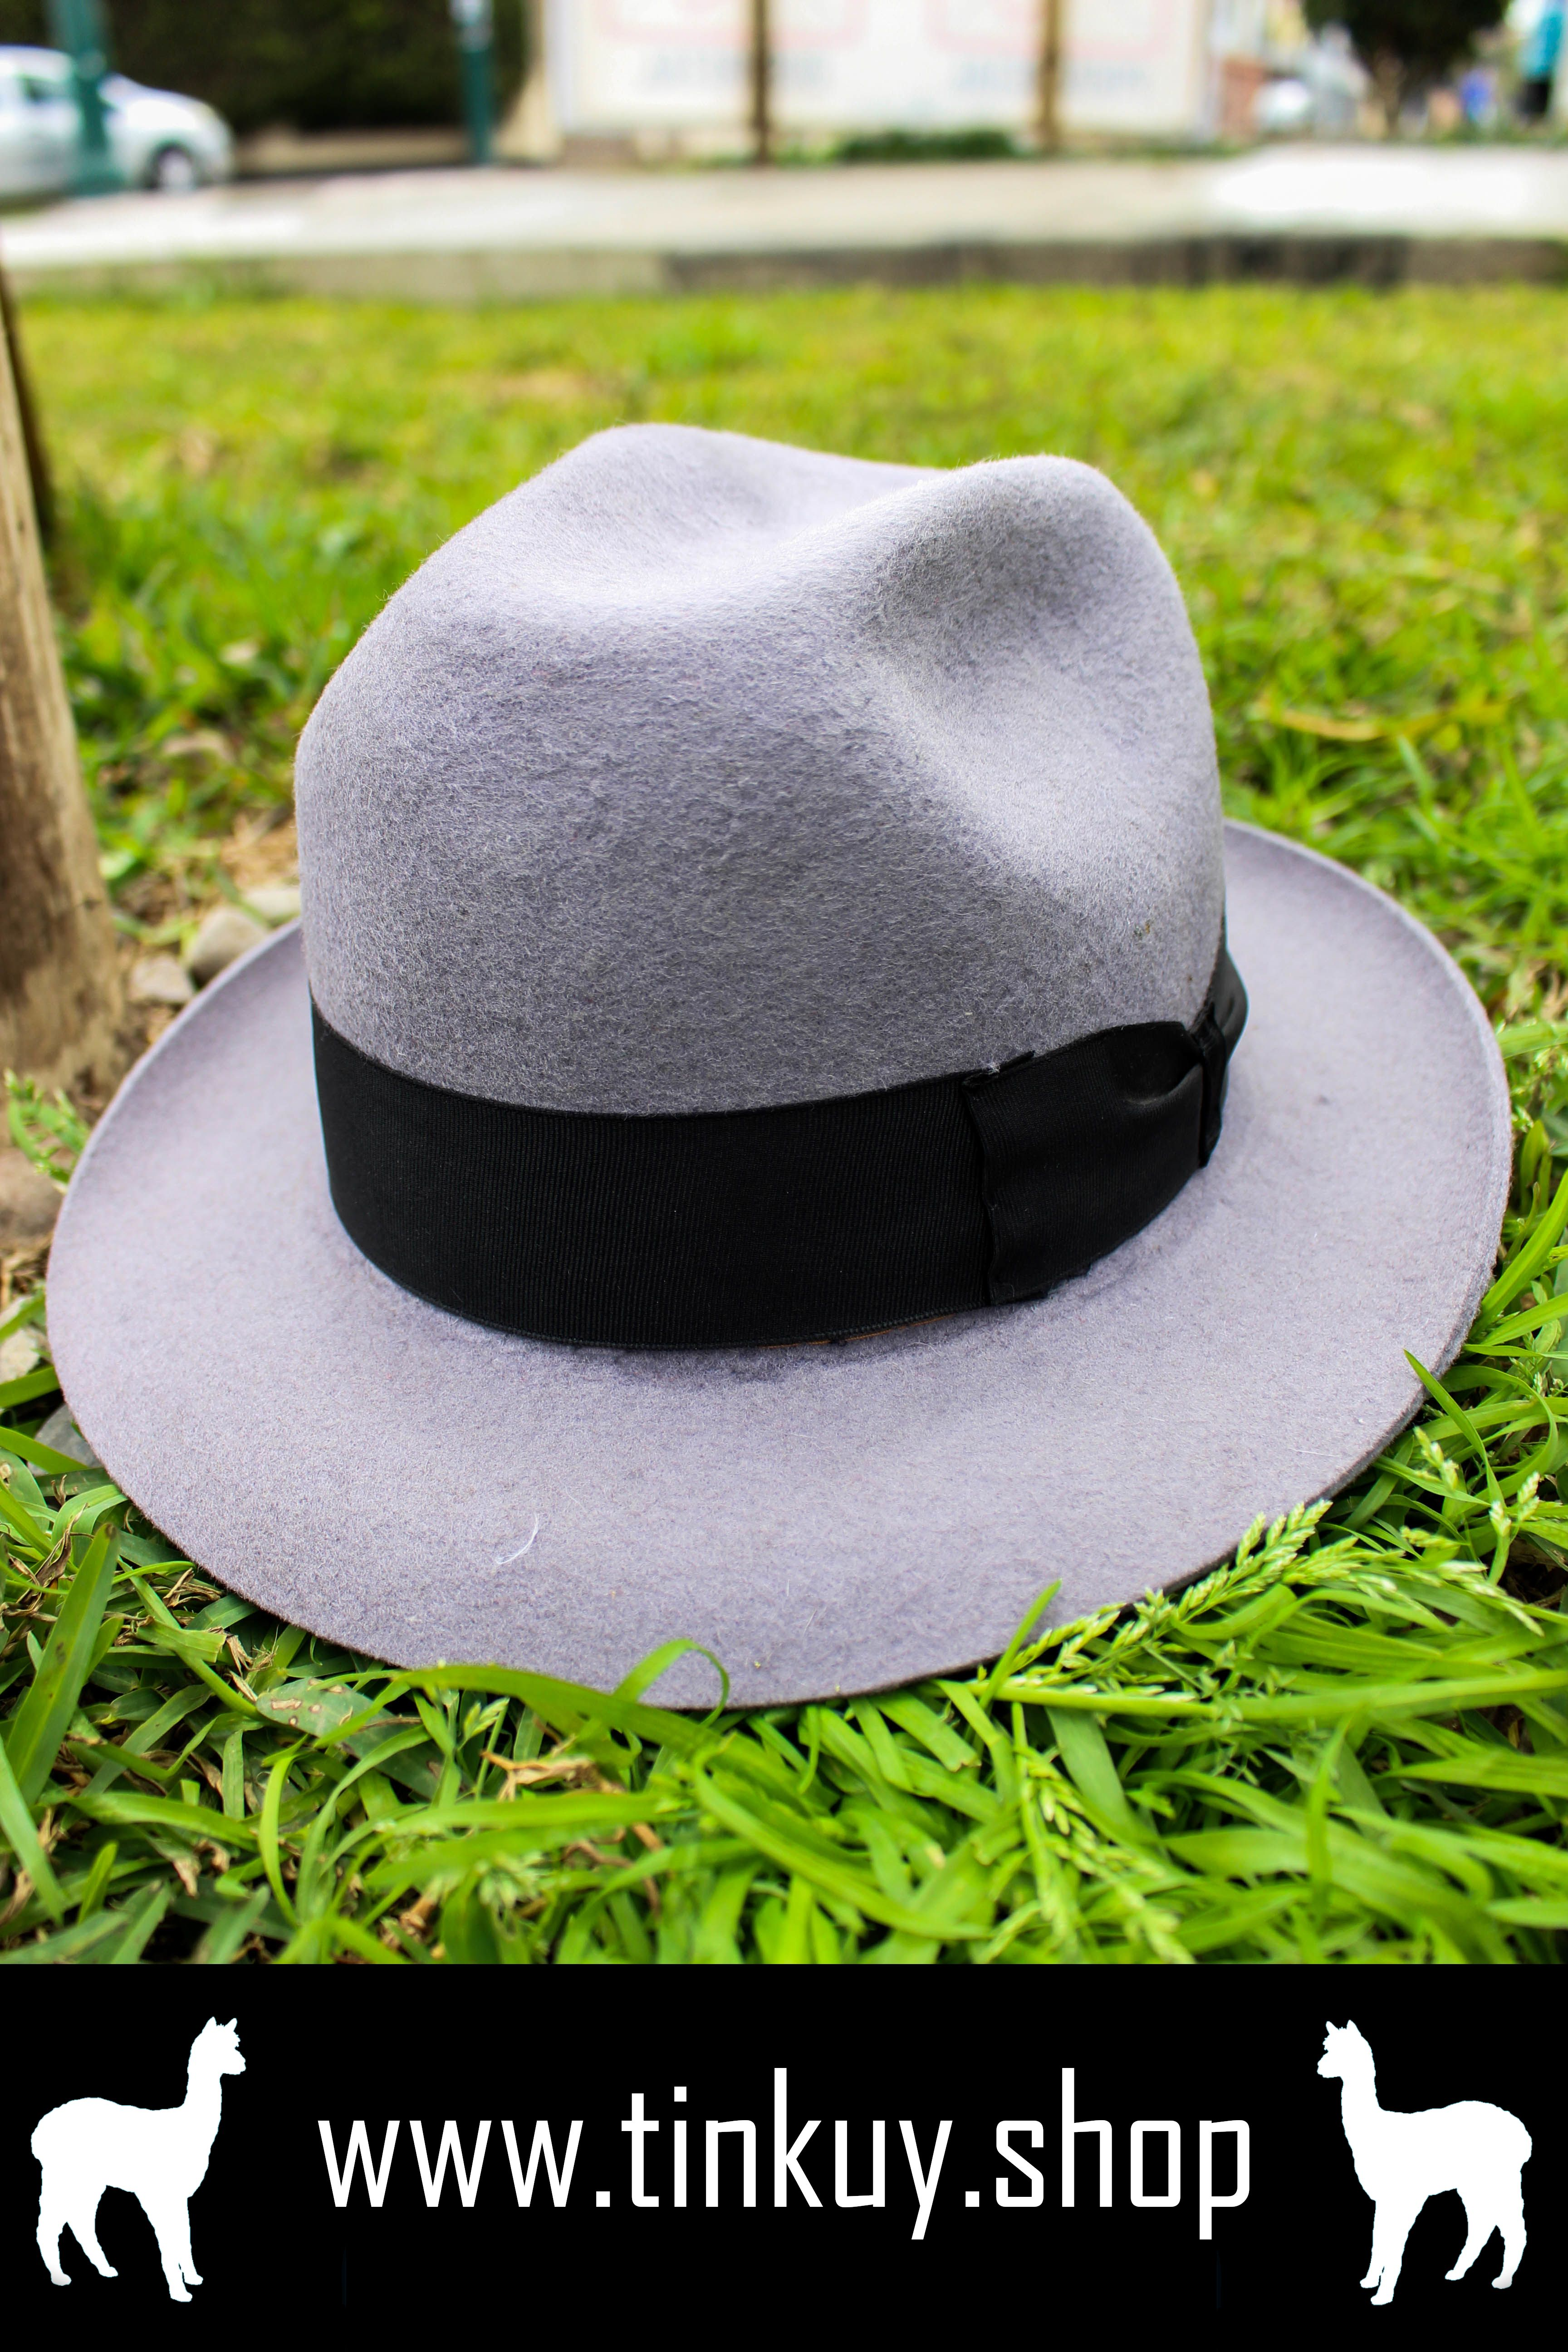 9b1cc3b4b4bb93 Fedora hats for men, Peruvian hats, fedora hats online, winter hats, cheap fedora  hats, short brim hat, buy fedora Indiana Jones hat, felt hat, ...